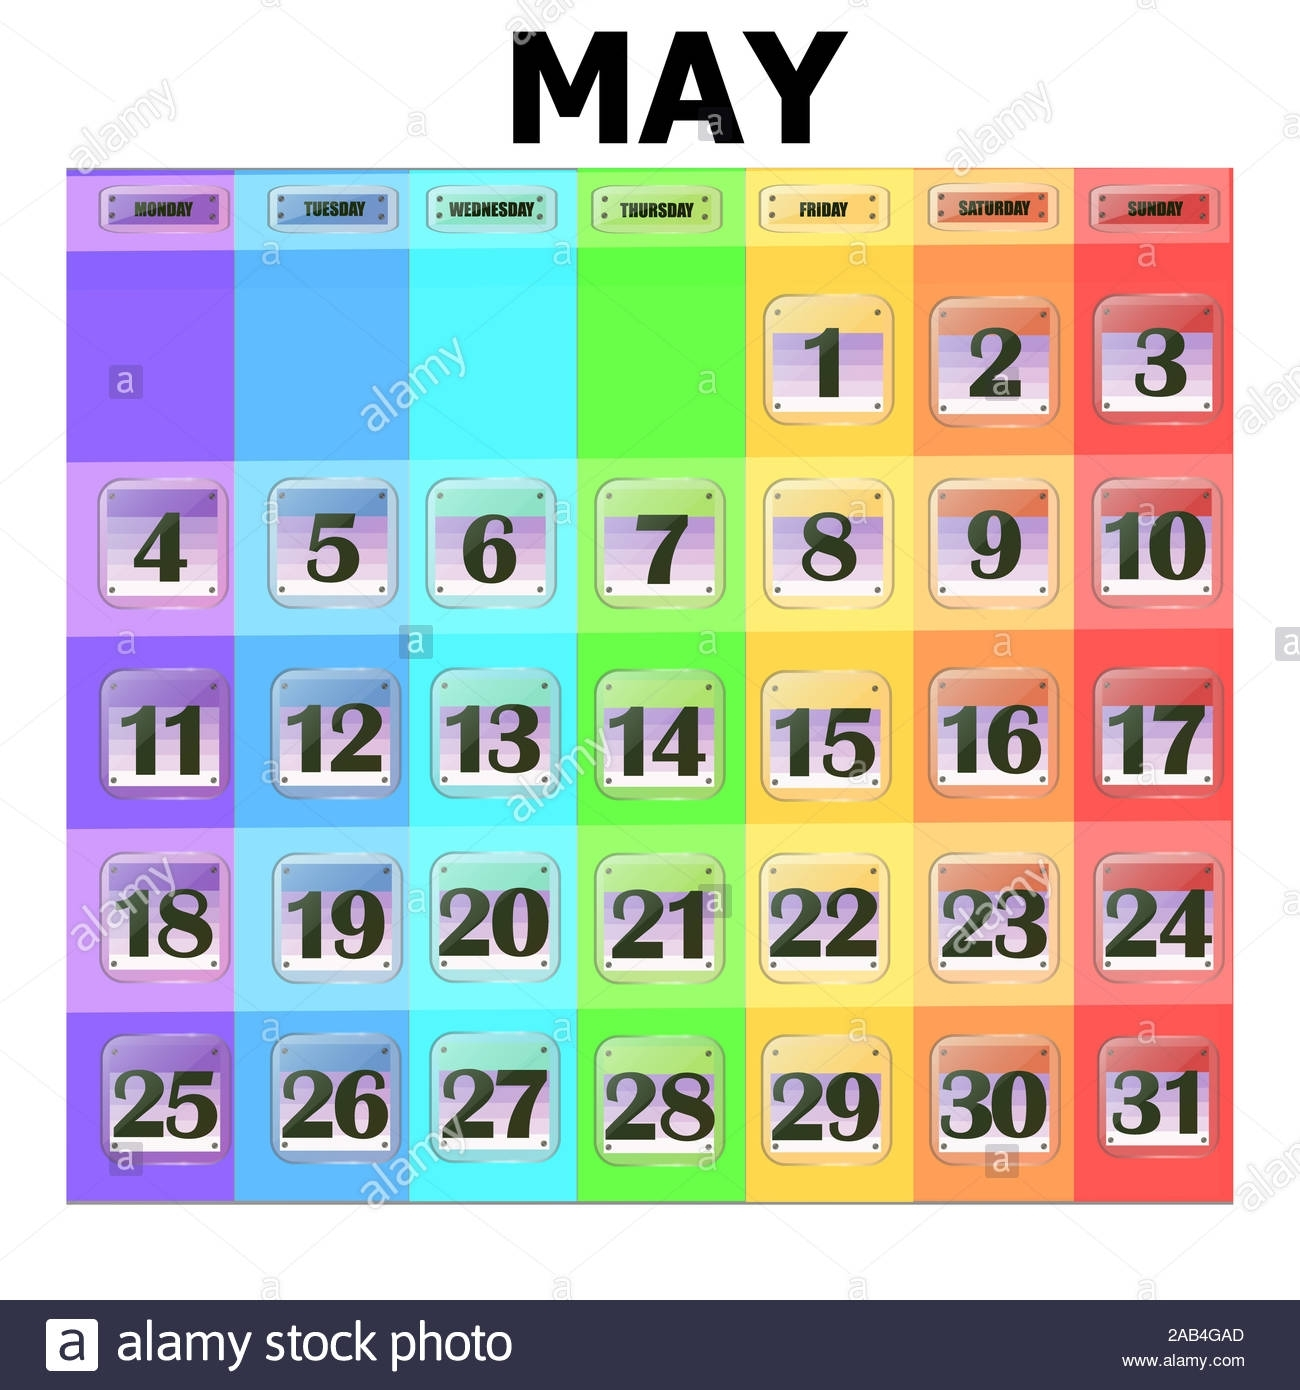 Colorful Calendar For May 2020 In English. Set Of Buttons pertaining to 2020 Calendar With Special Days